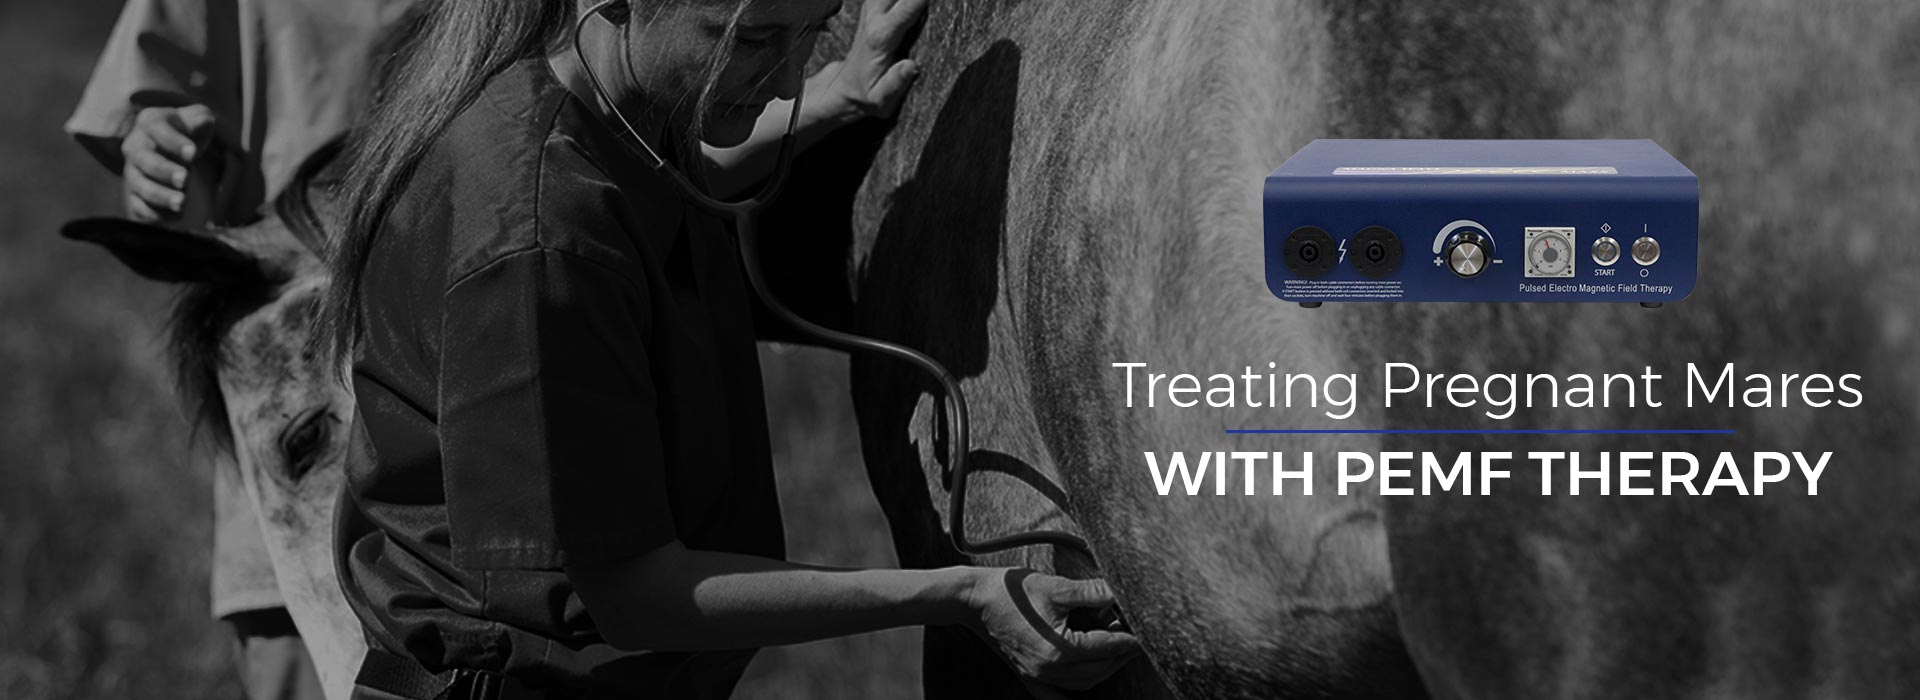 Treating Pregnant Mares with PEMF Therapy